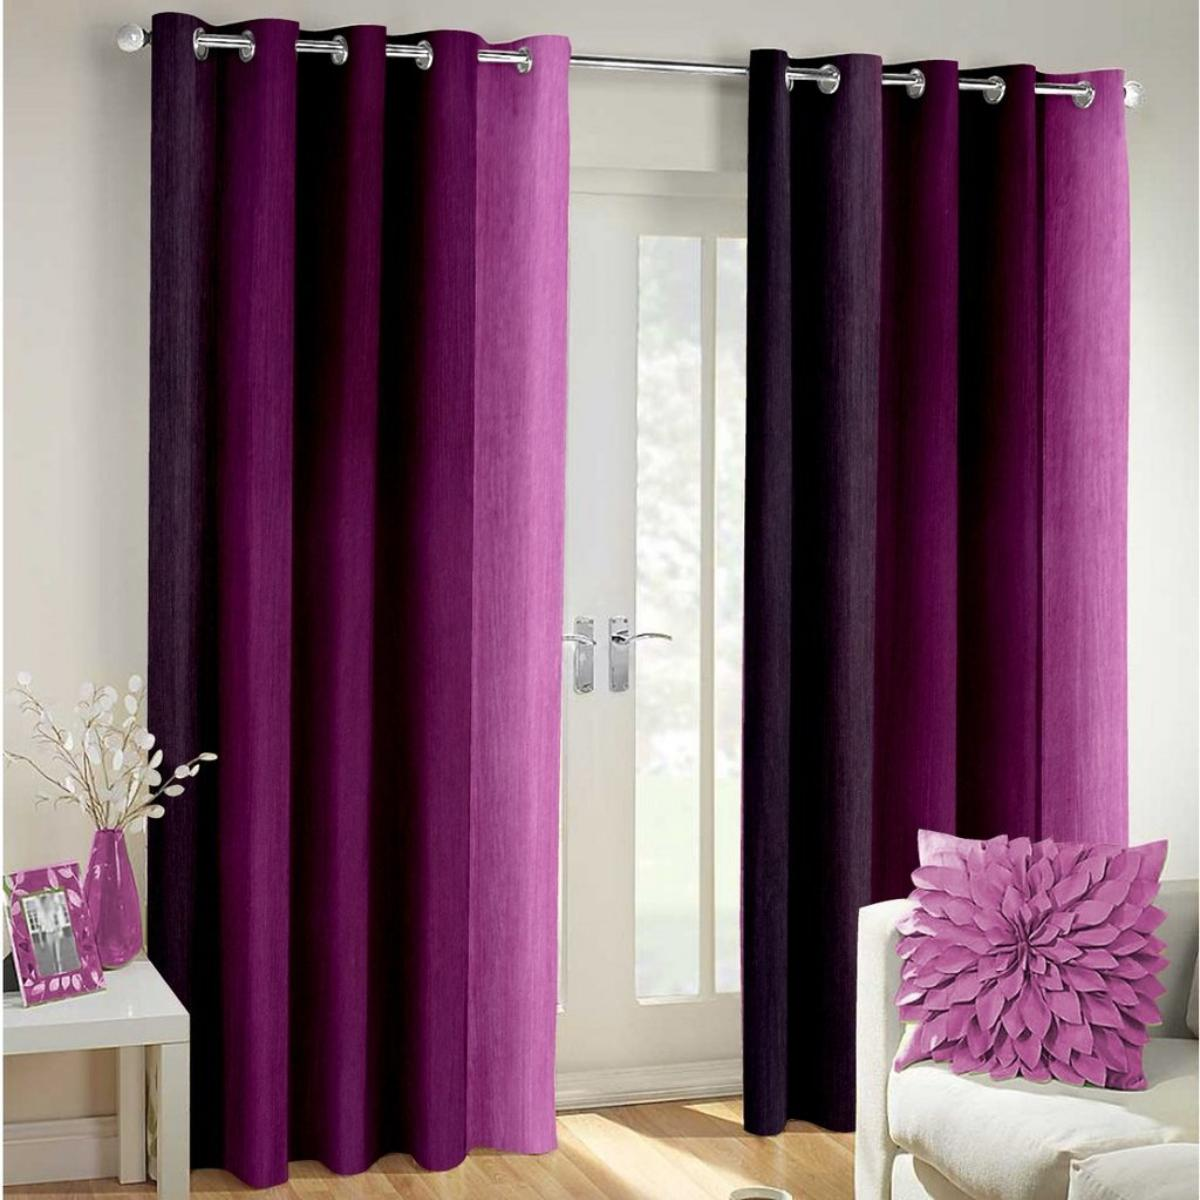 IndianOnlineMall shaded Single long crush curtain(4x9ft)